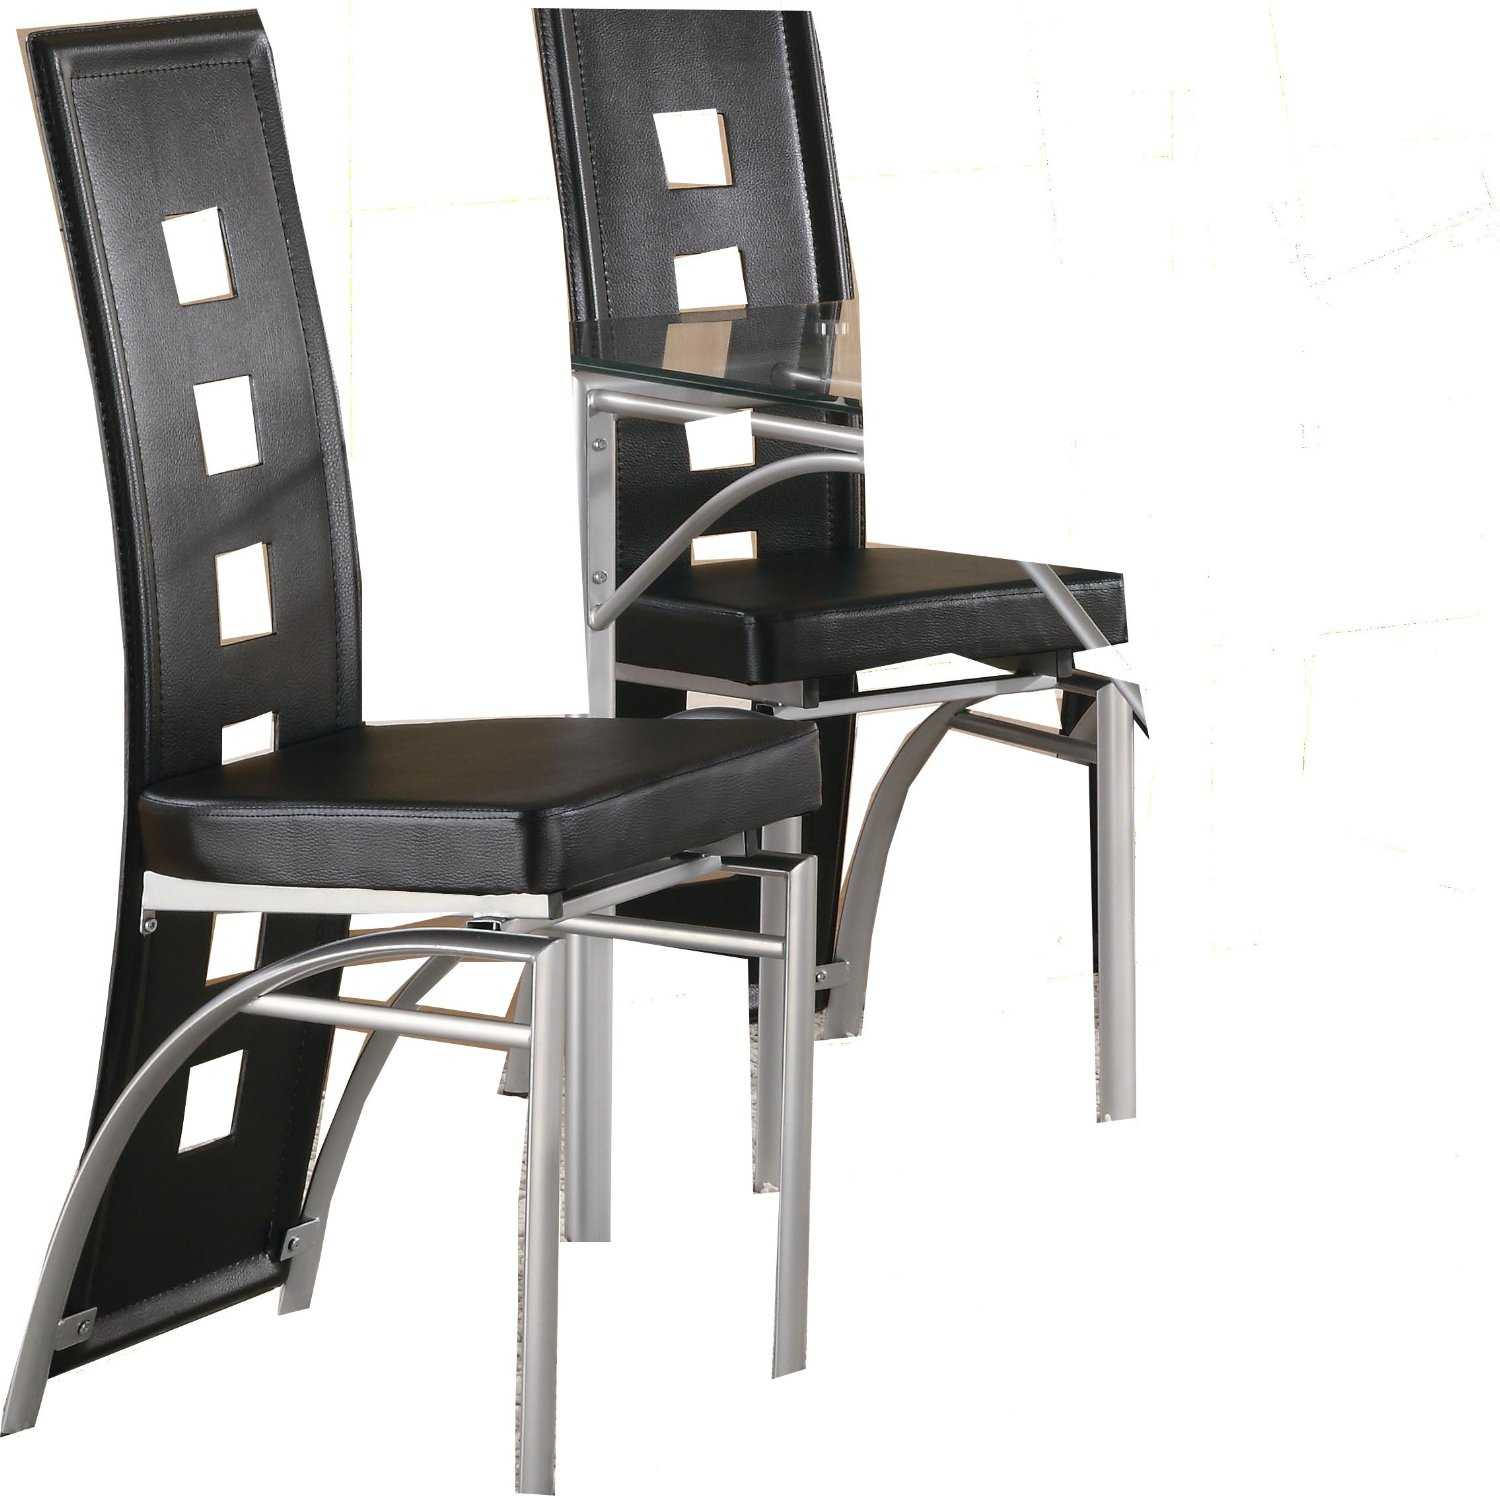 Best black dining chairs amazon.com: coaster home furnishings contemporary dining chair, silver/black,  set of 2: kitchen qhfeaqq